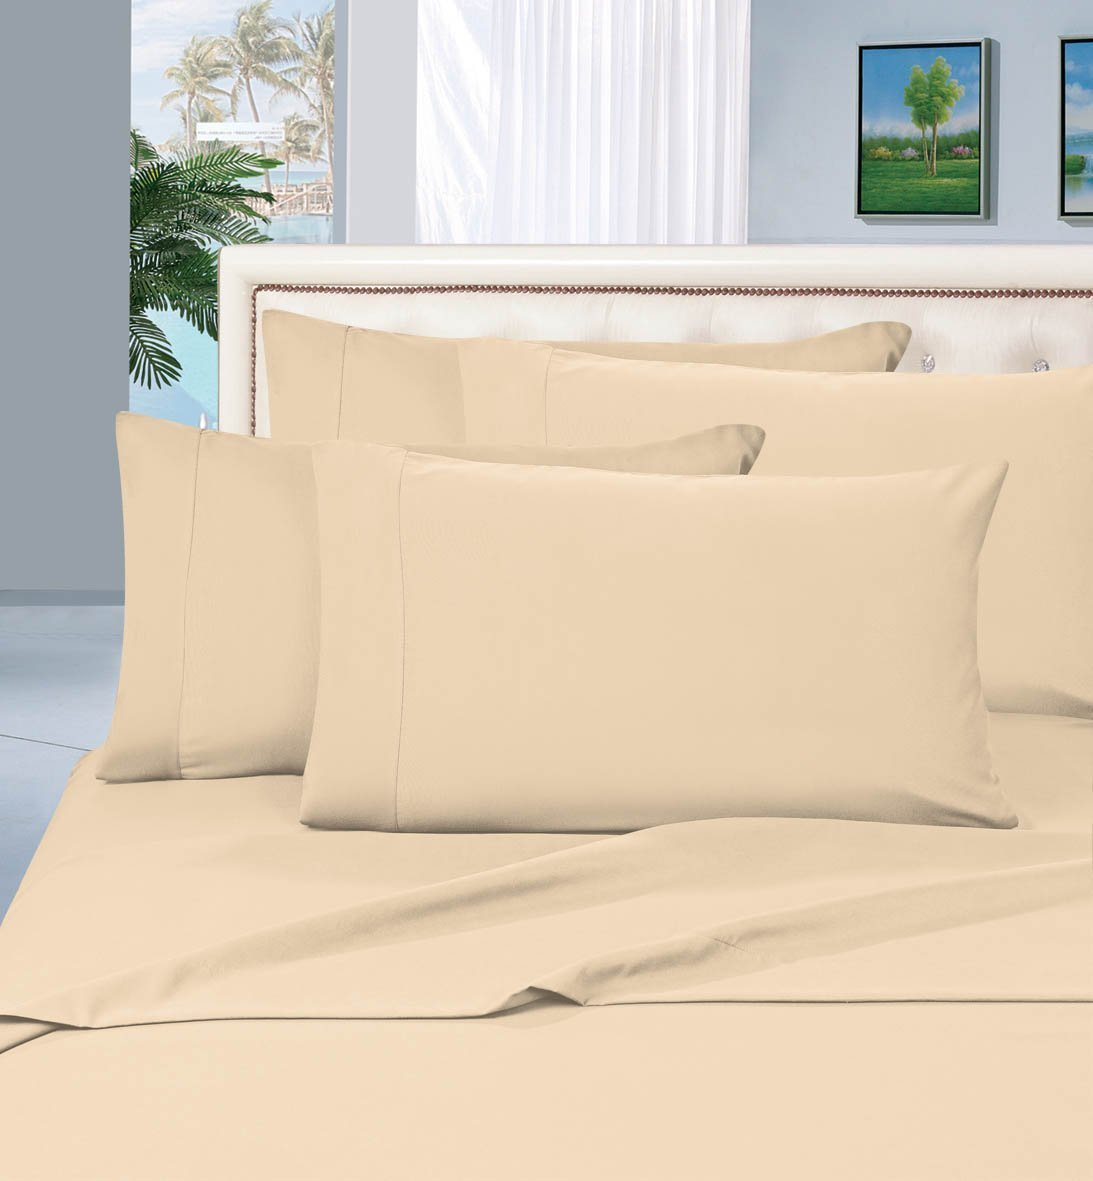 Elegant Comfort Luxurious Bed Sheets Set on Amazon 1500 Thread Count Wrinkle,Fade and Stain Resistant 3-Piece Bed Sheet Set, Deep Pocket, Hypoallergenic - Twin/Twin XL Cream